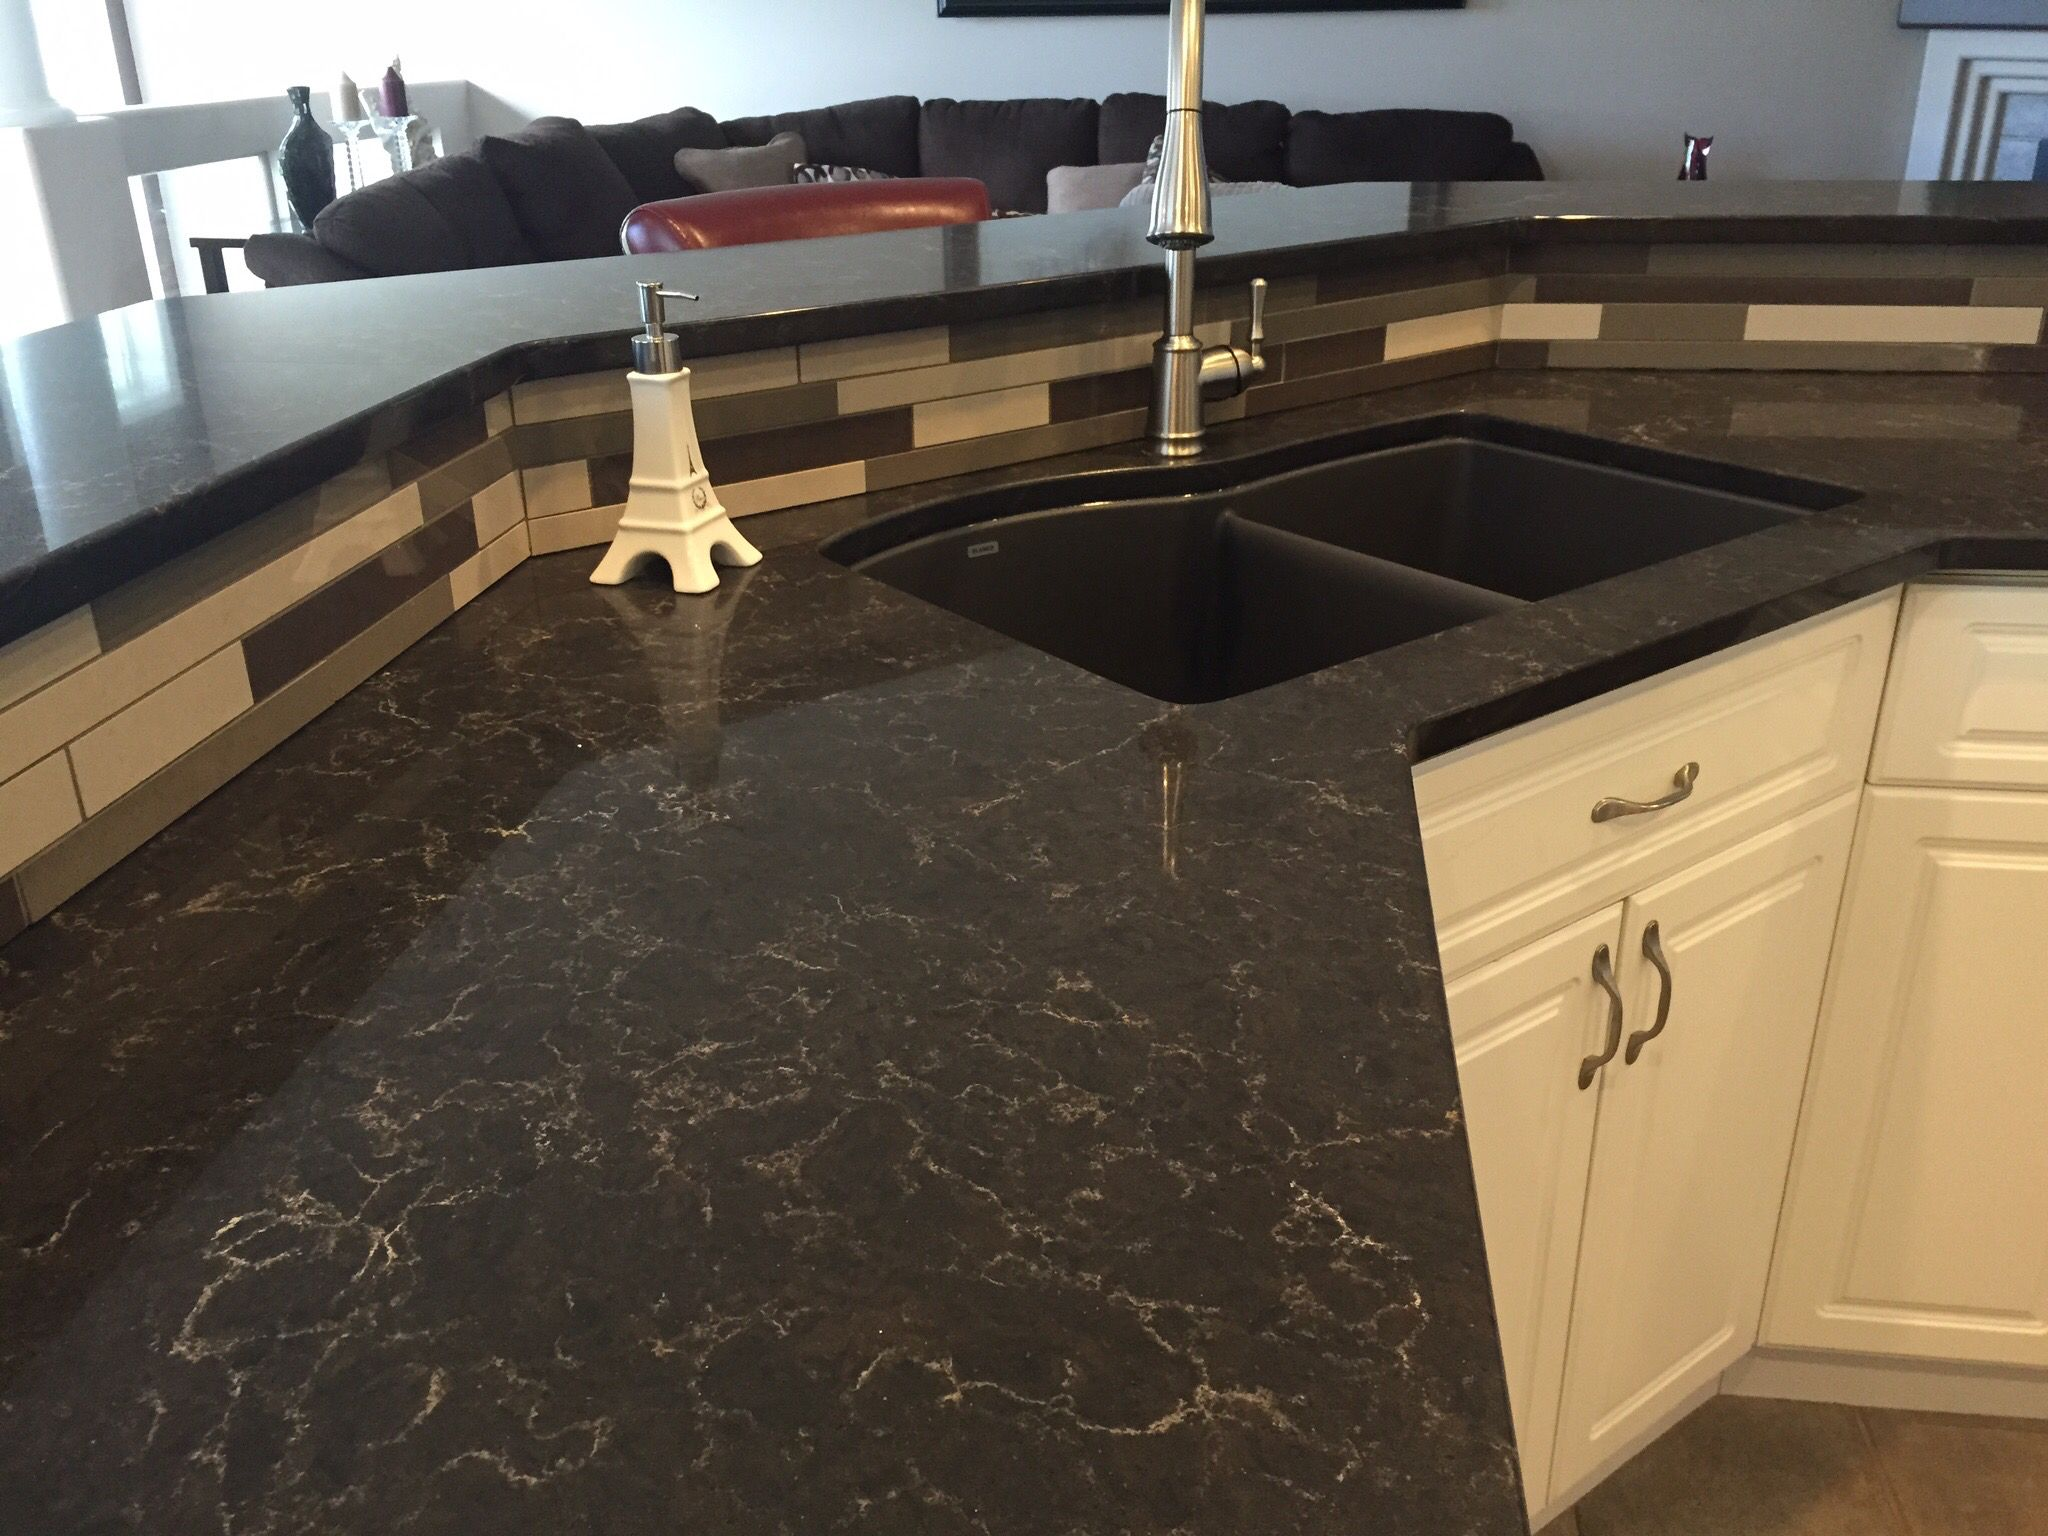 Quartz Countertop Prices Canada Caesarstone Woodlands Quartz Countertop With Angora Segment Random